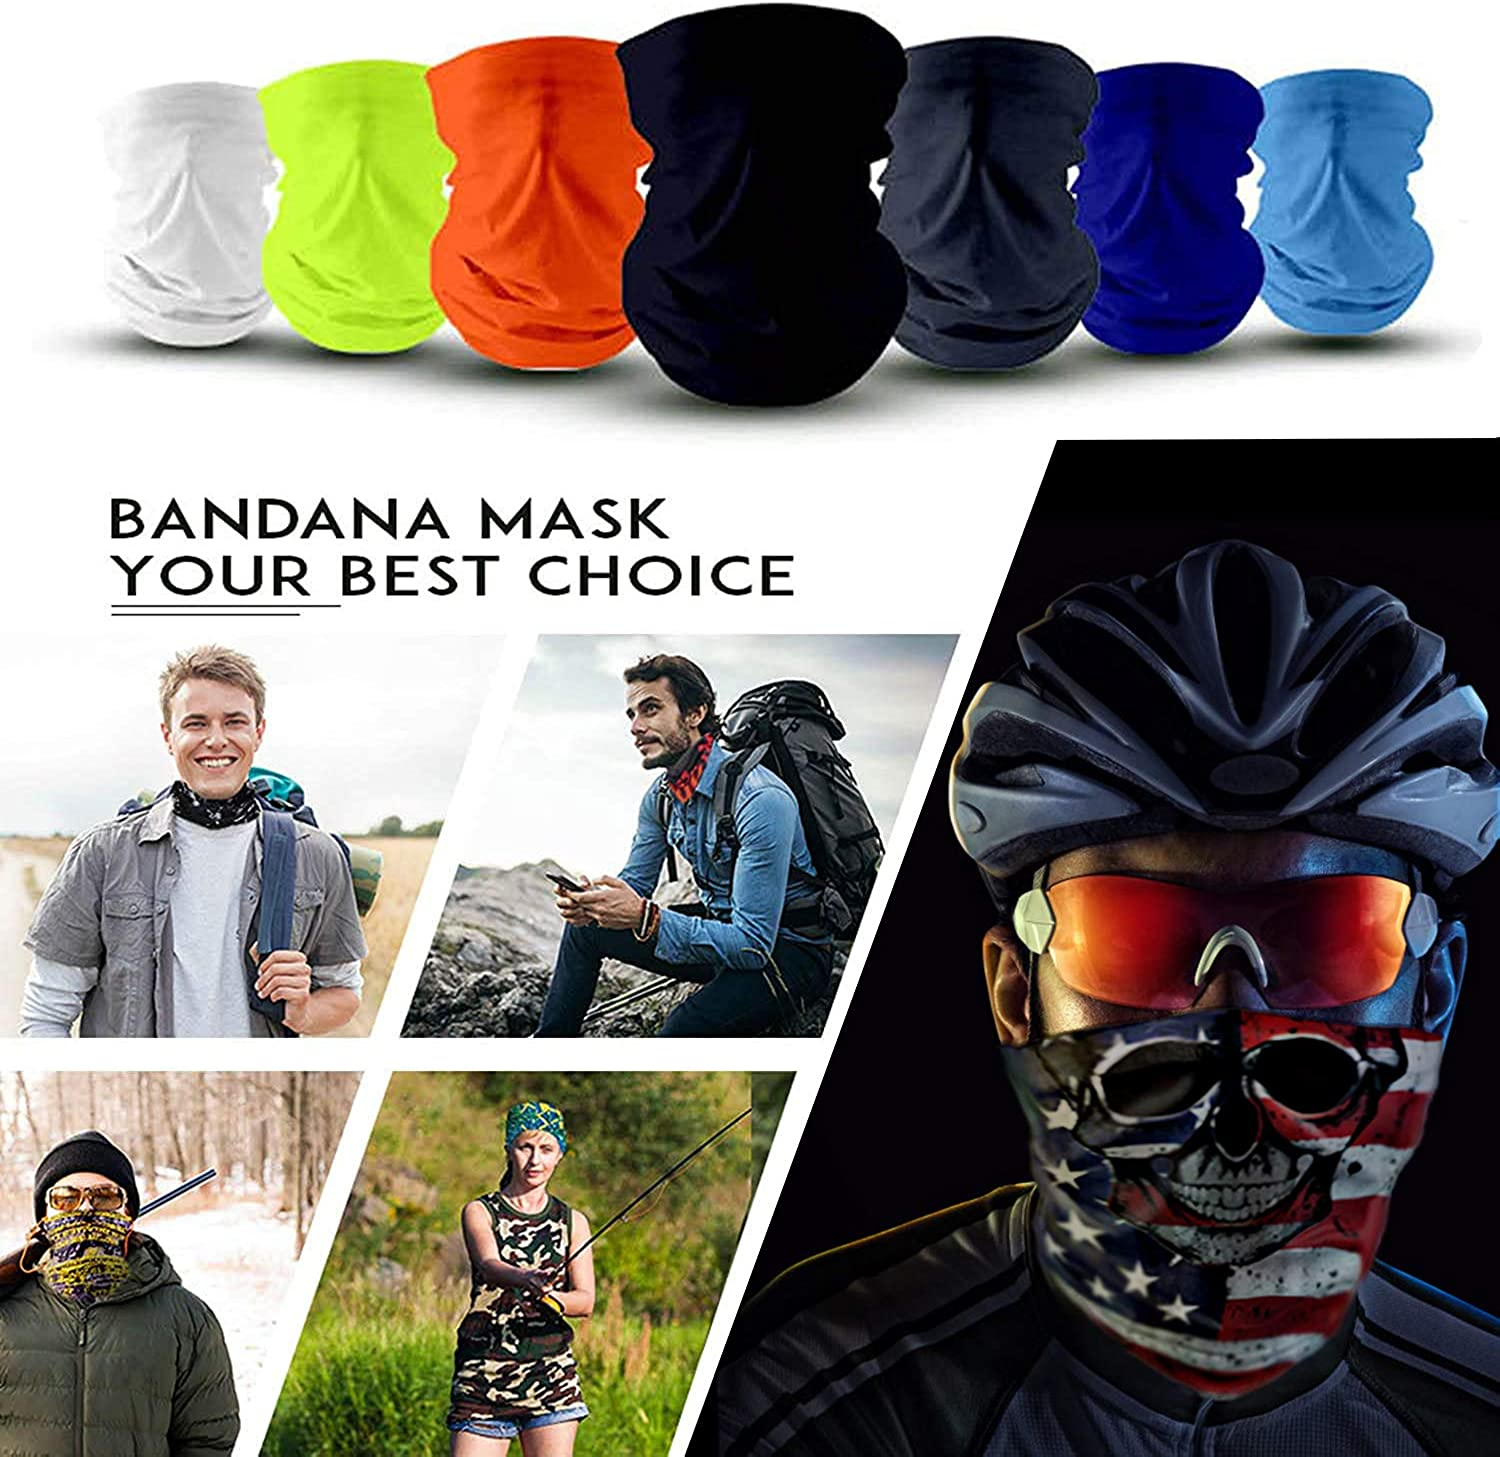 Elimoons Bandanas for Men & Women Breathable Cooling Neck Gaiters,Summer UV Protection Face Cover Outdoor Sport Reusable Face Shield Fishing Running Motorcycle